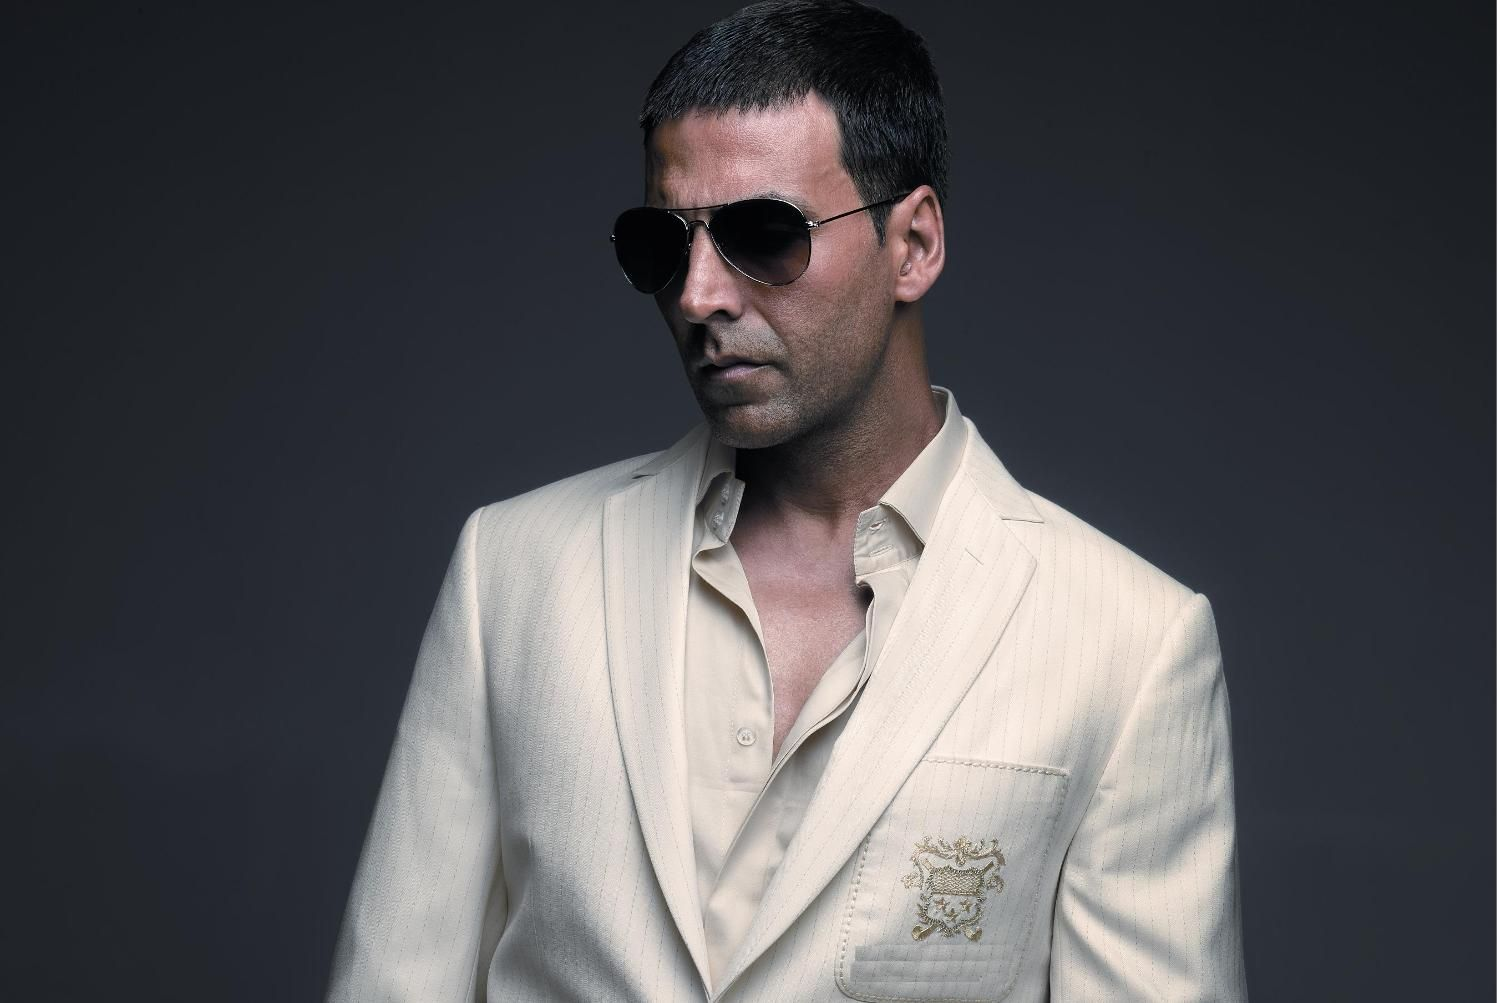 Akshay Kumar Hairstyle And Haircut In Omg His Hairstyle Has Always Been Classic Not Only In This Film Even You Akshay Kumar Bollywood Celebrities Commando 2